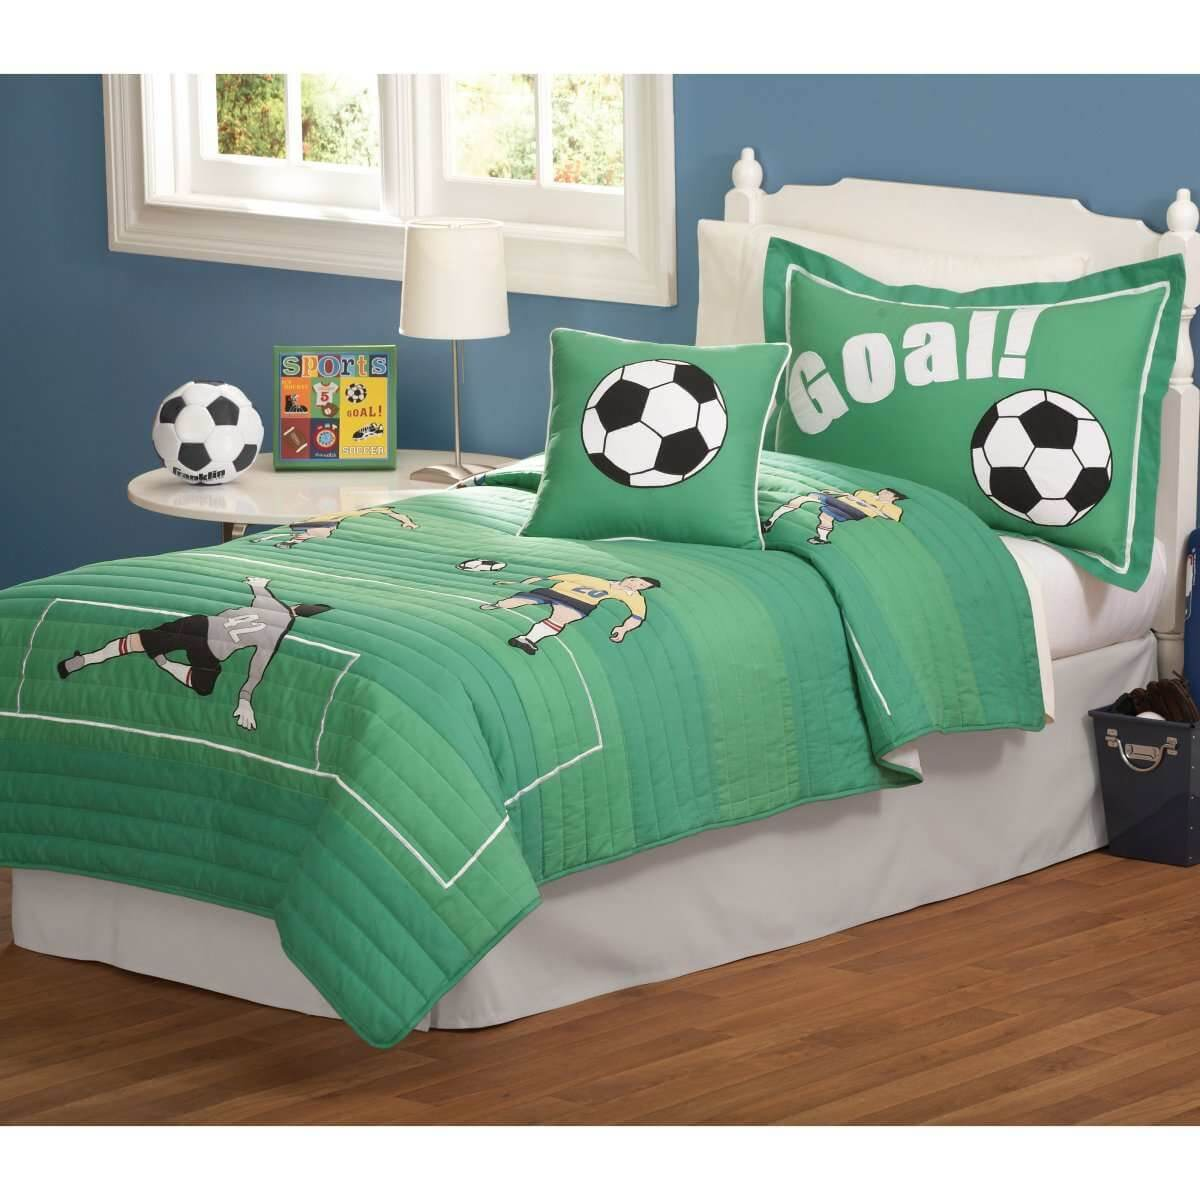 boys room furniture ideas to decorate kid s furnishings interior design 10937